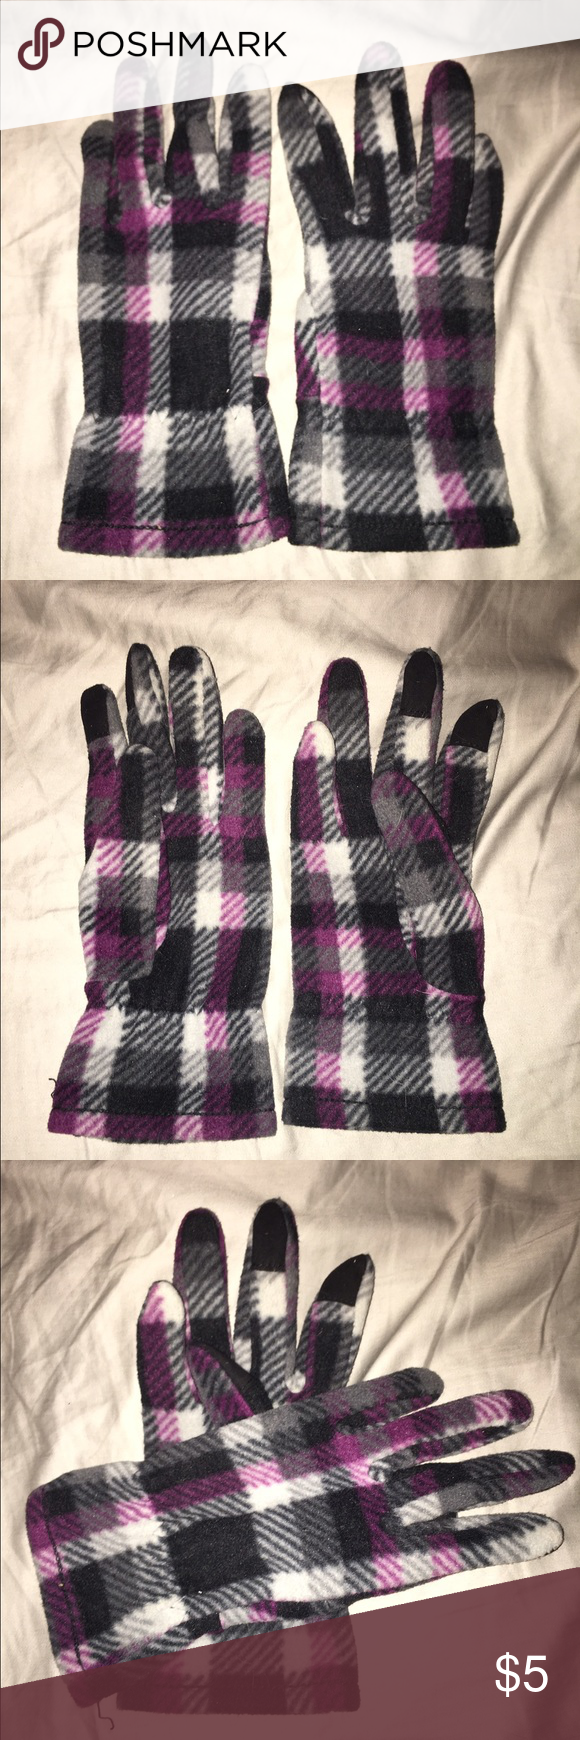 NWOT Tech Purple, Black, & White Plaid Gloves NWOT. Tech friendly gloves. In purple, black, and white plaid. Adorable but too small for my hands. Definitely better for someone with smaller hands! Accessories Gloves & Mittens